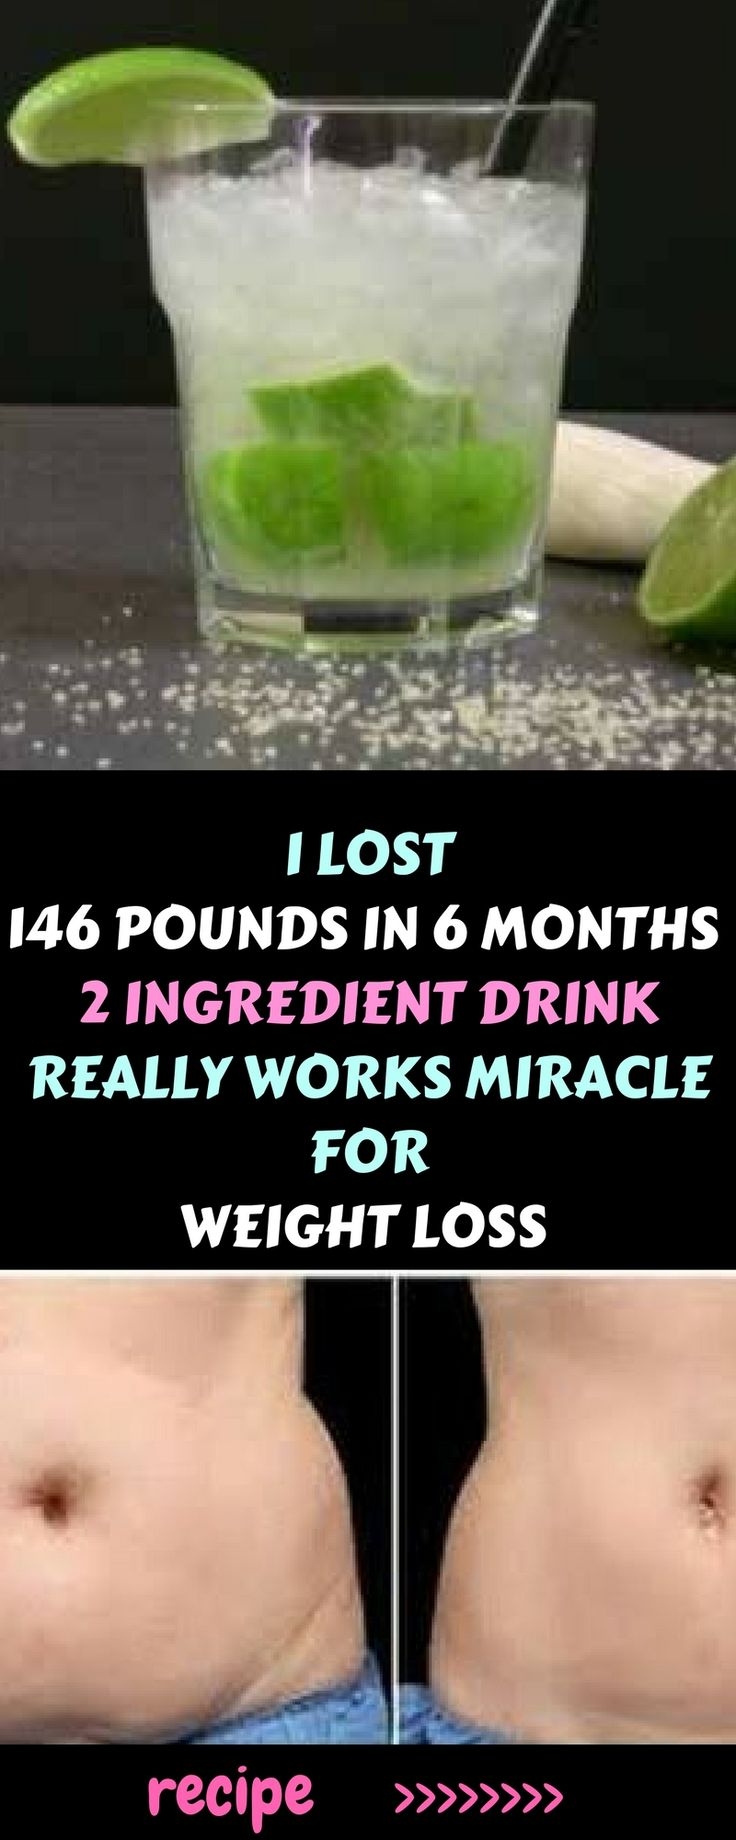 I LOST 146 POUNDS IN 6 MONTHS, THIS 2 INGREDIENT DRINK REALLY WORKS MIRACLE FOR ...